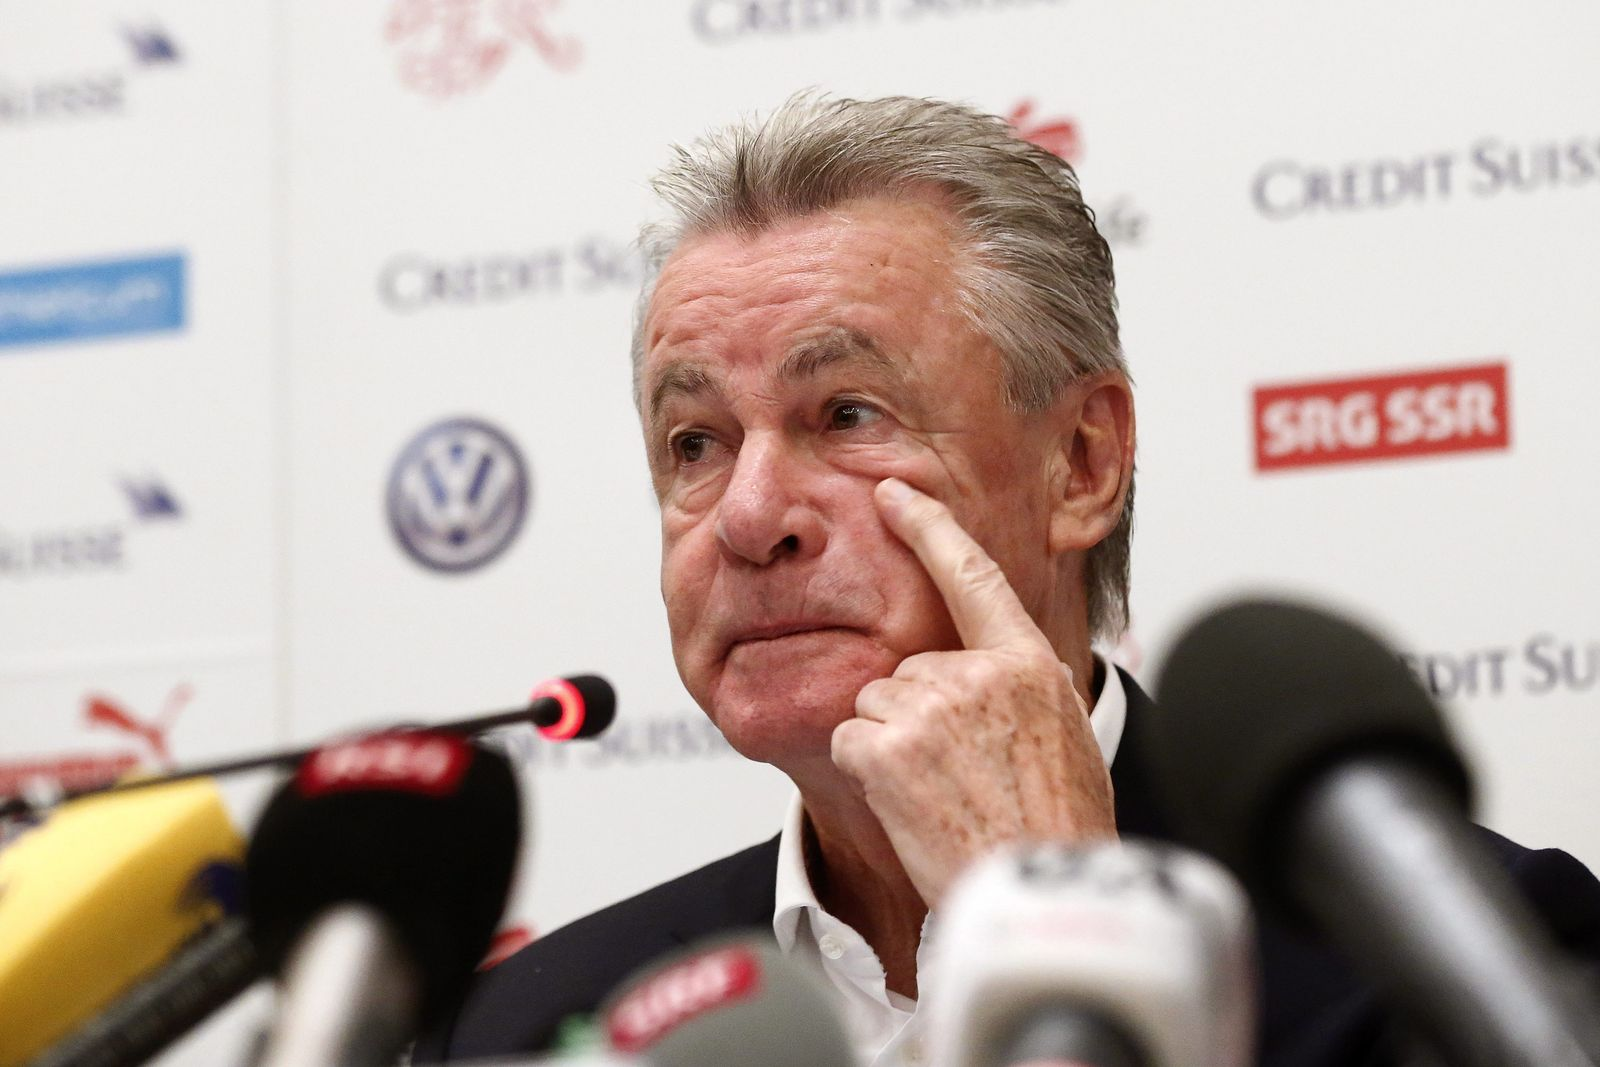 World Cup 2014 - Switzerland press conference